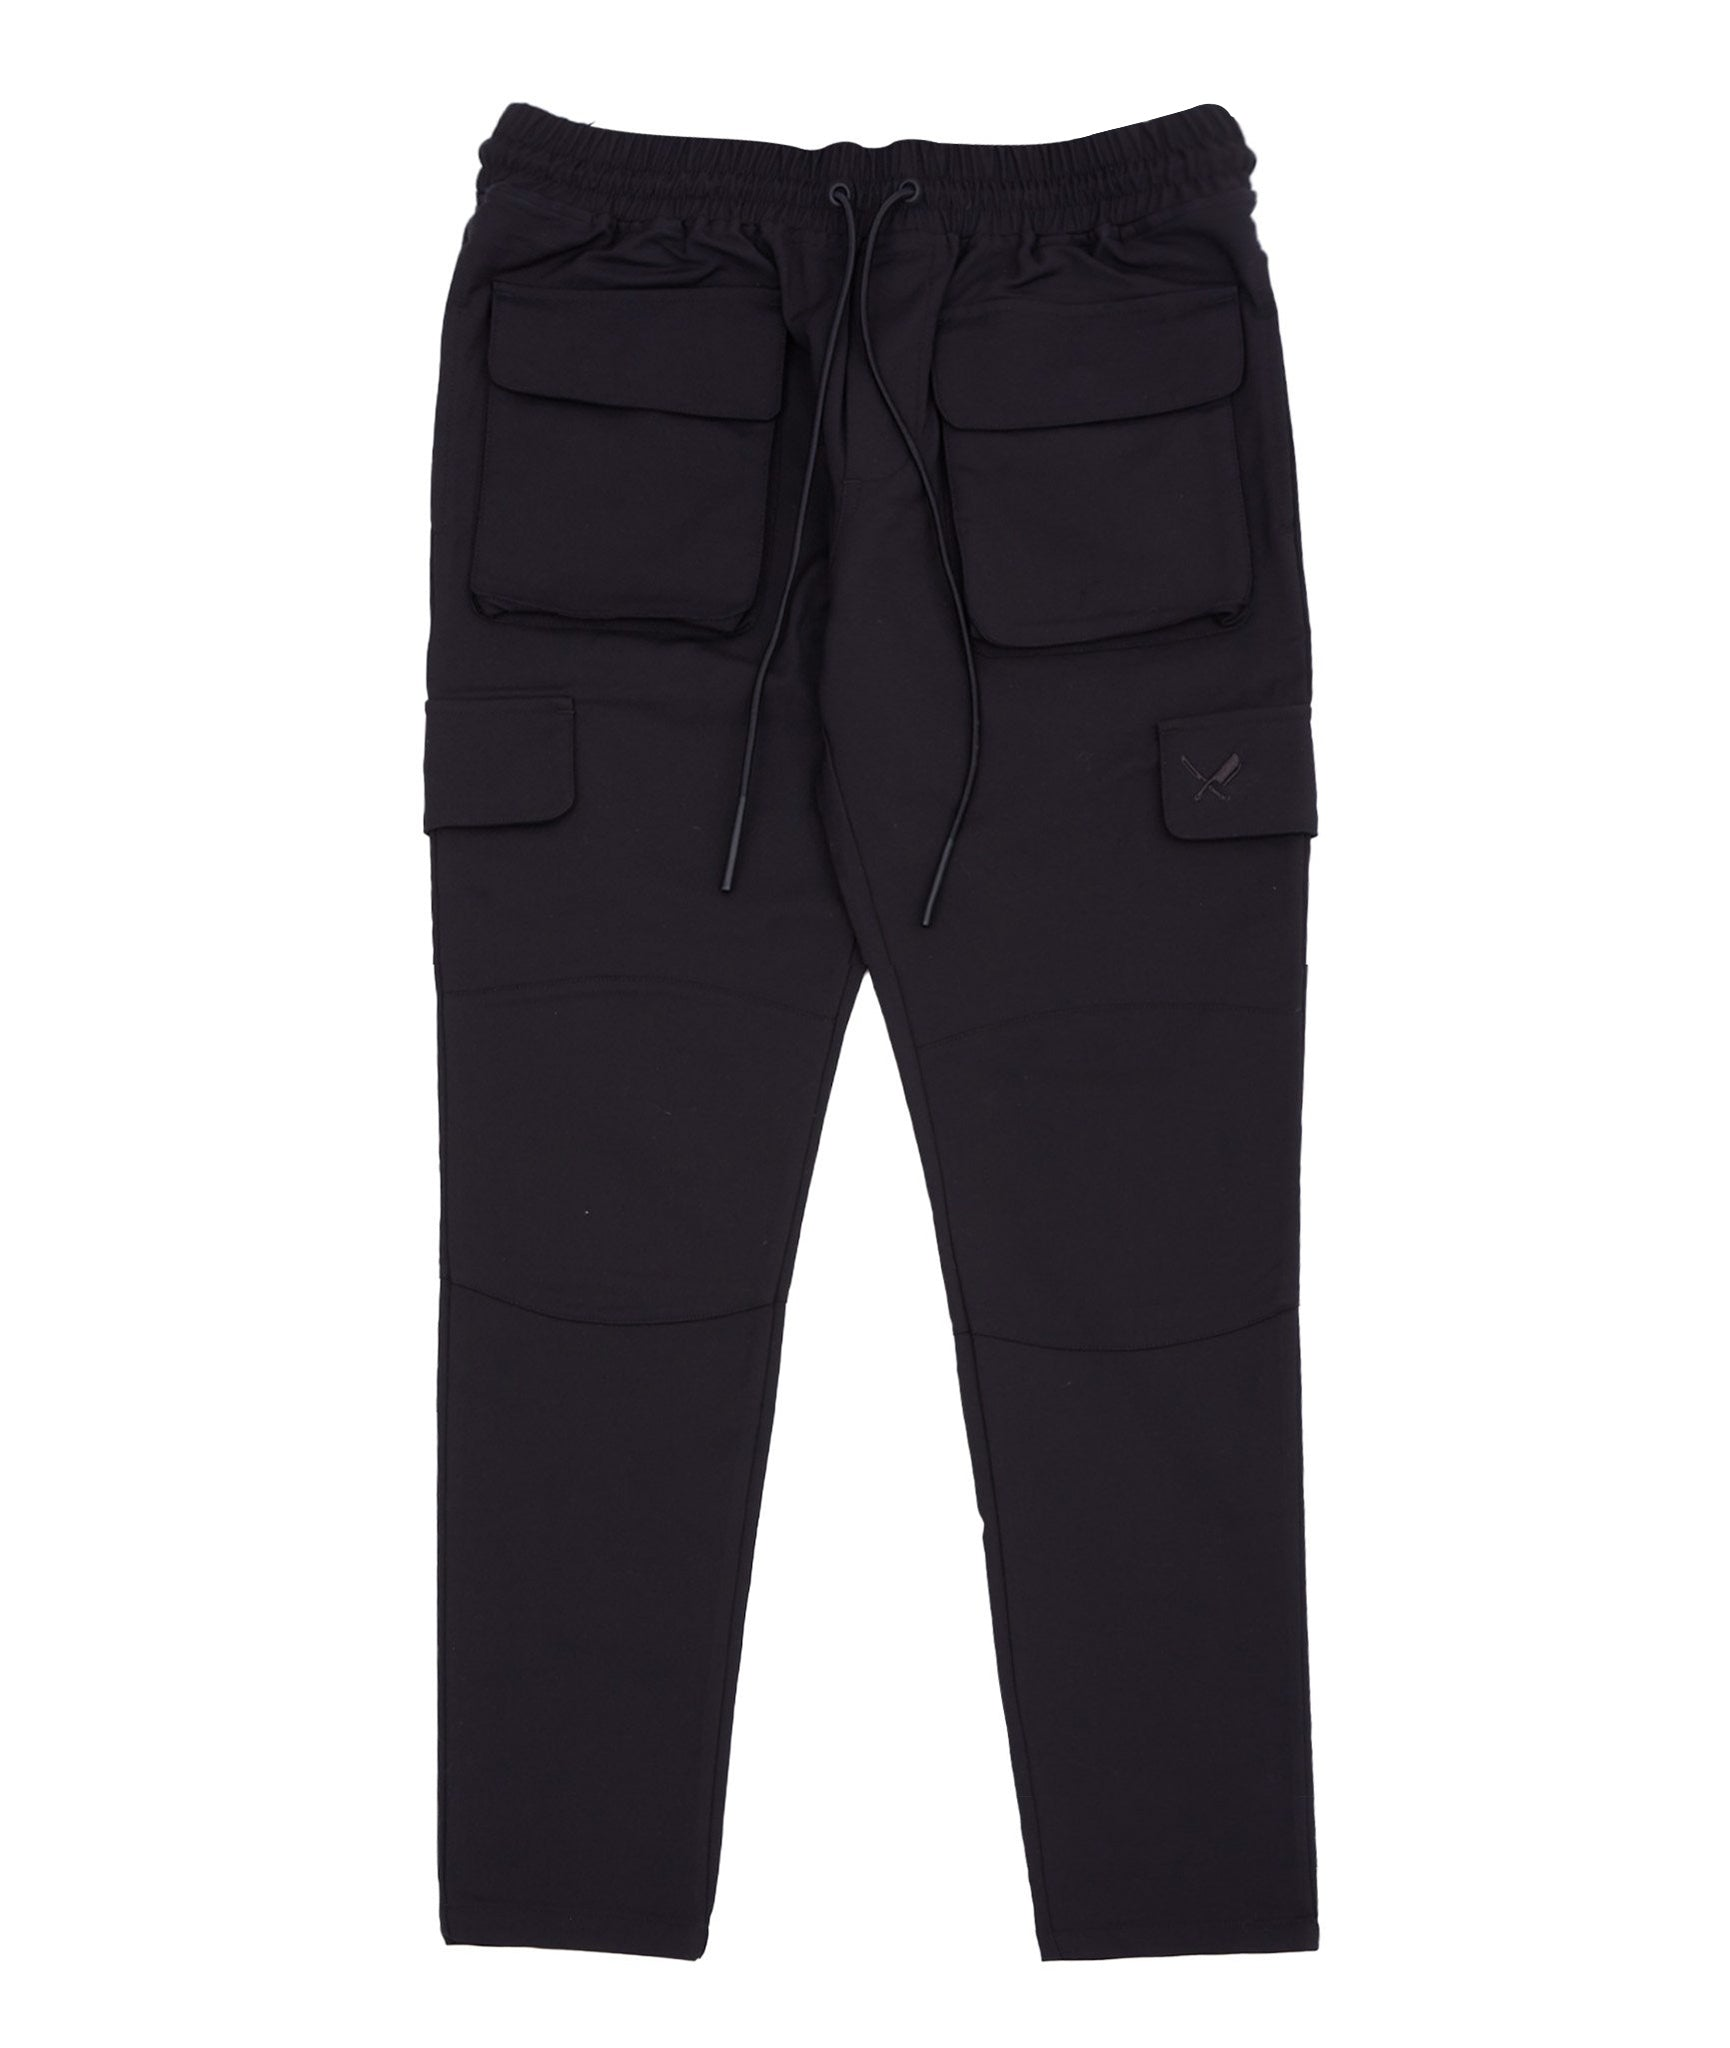 distorted people - Pocket Cargo Pants Slim